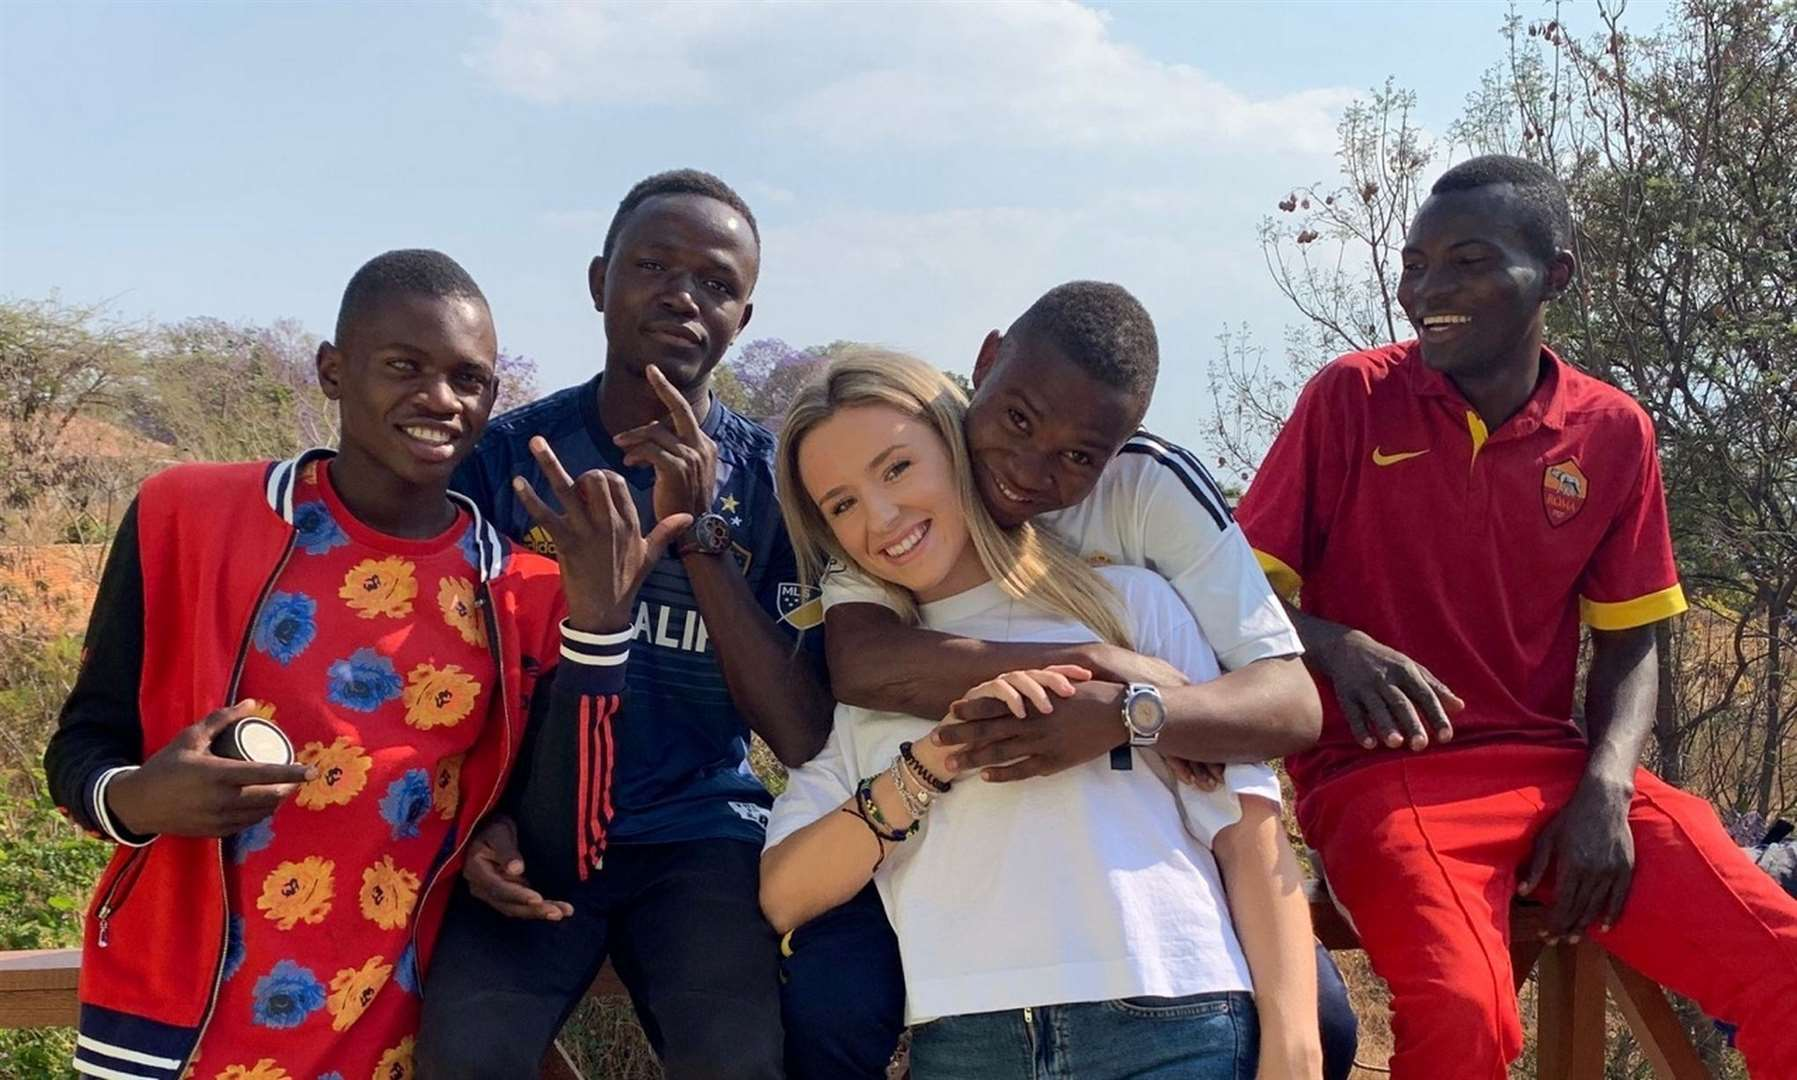 Letty with some of the Tanzanian children she met after volunteering in an orphanage on her gap year. Picture: Letty McMaster/SWNS